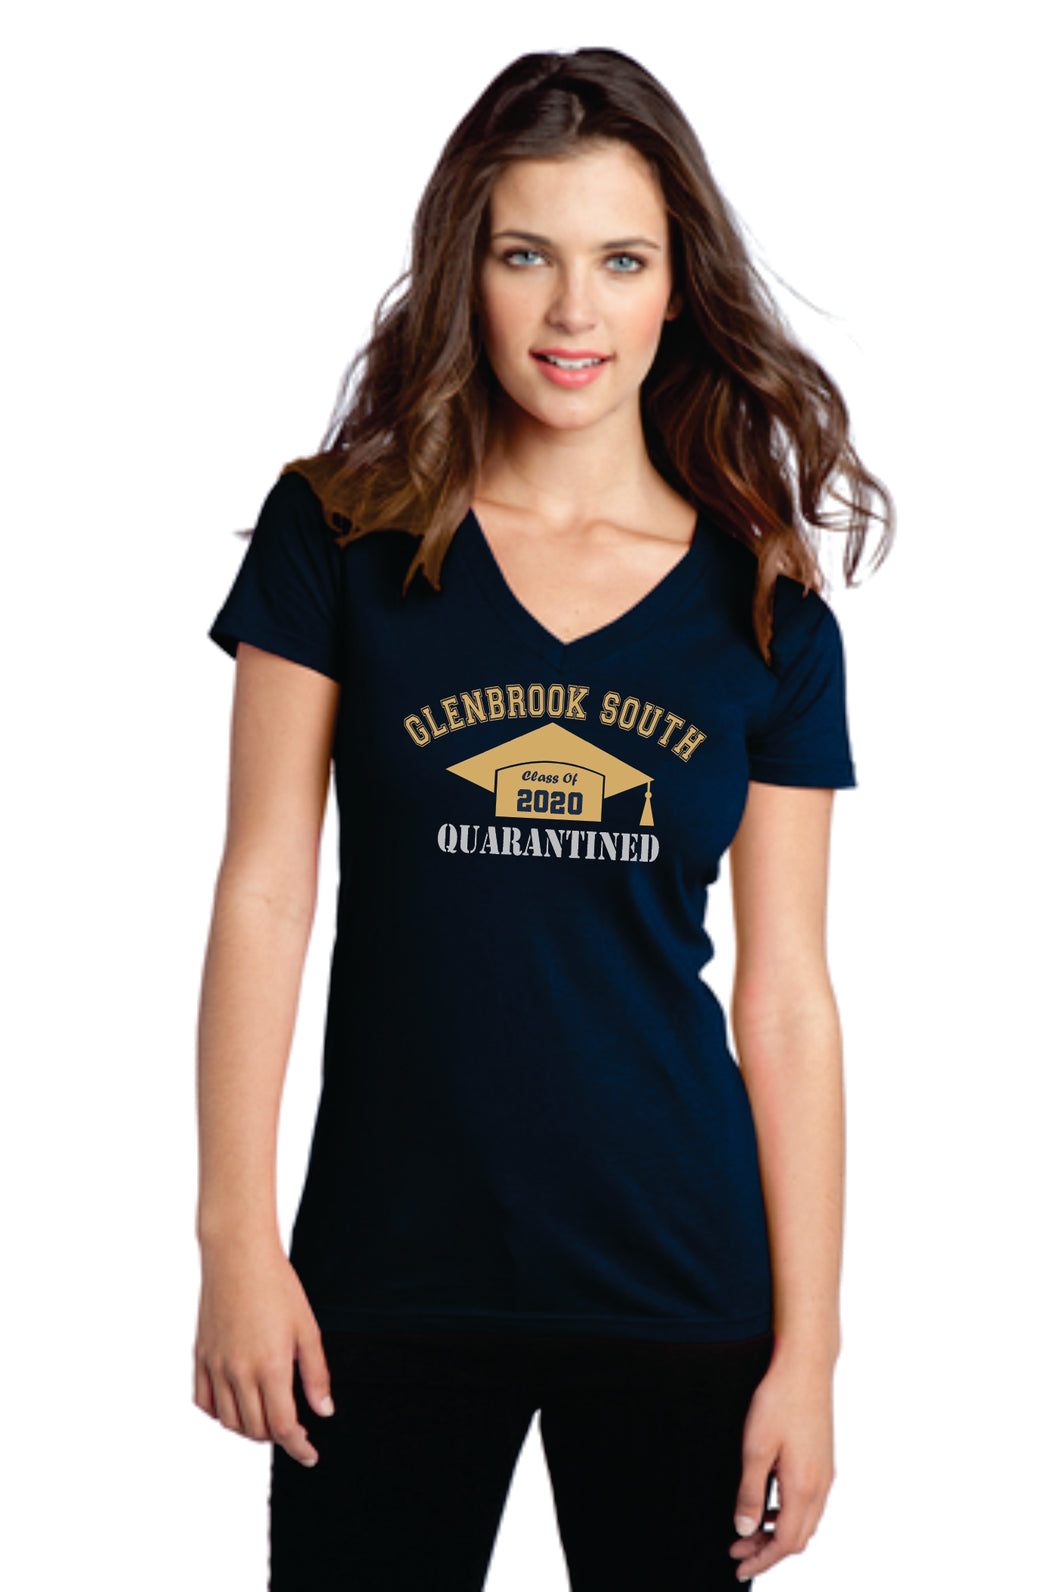 Glenbrook South Class of 2020 Quarantined Grad - Ladies Tee